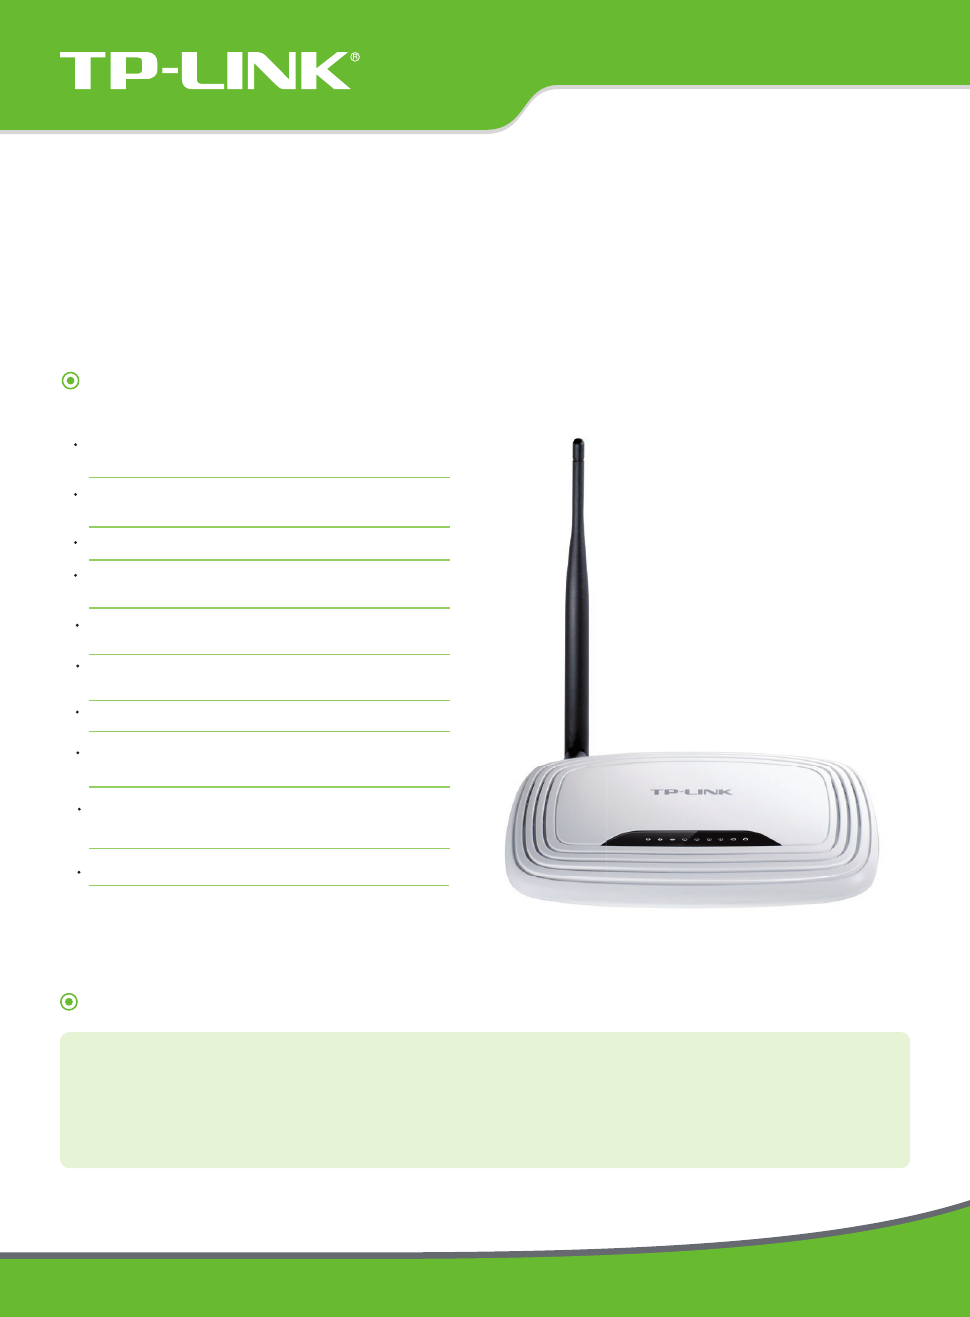 TP-Link TL-WR741ND V5 Data Sheet - Free PDF Download (2 Pages)